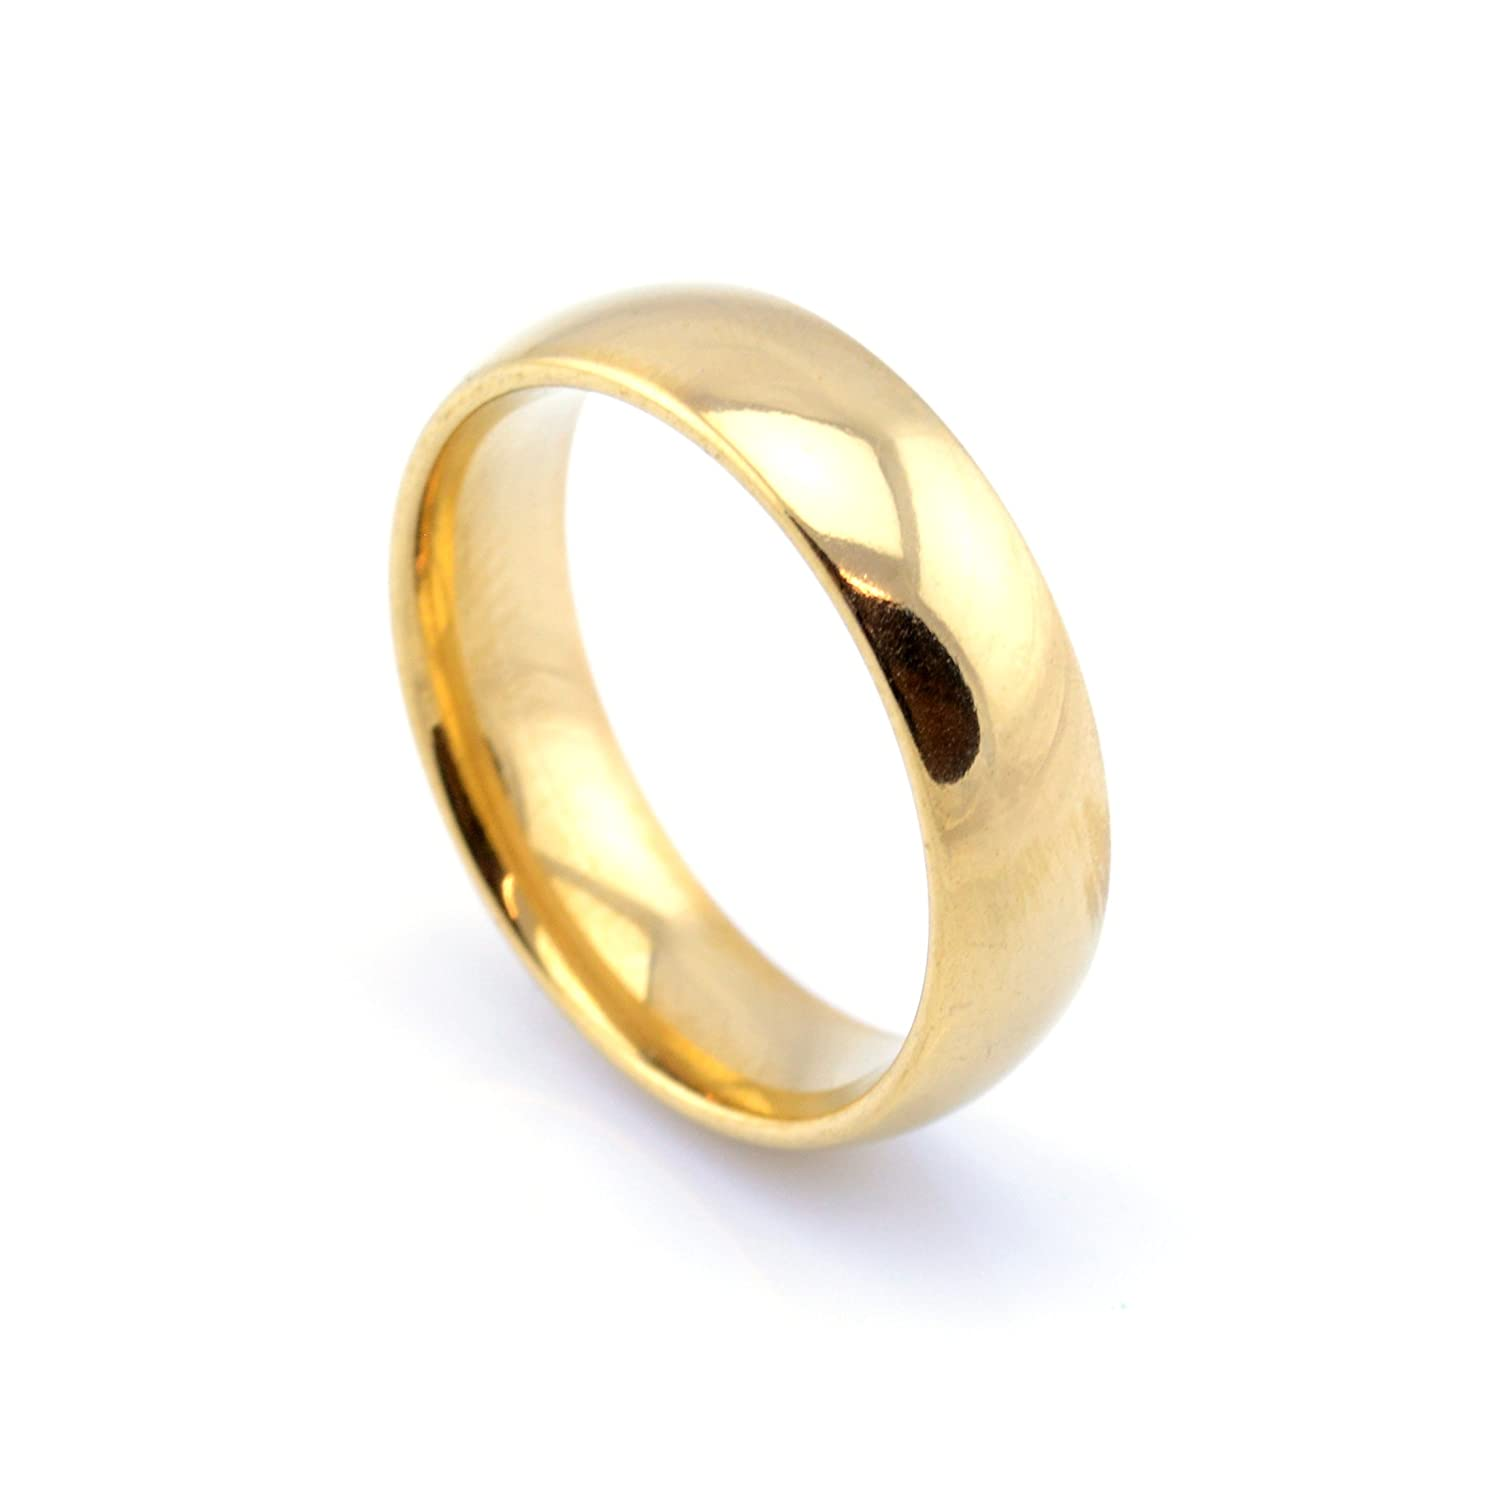 Vault 101 Limited 18k Gold Plated Men's Women's Stainless Steel Wedding Band Ring (6mm Wide) GOLDPLAINRING6MM1